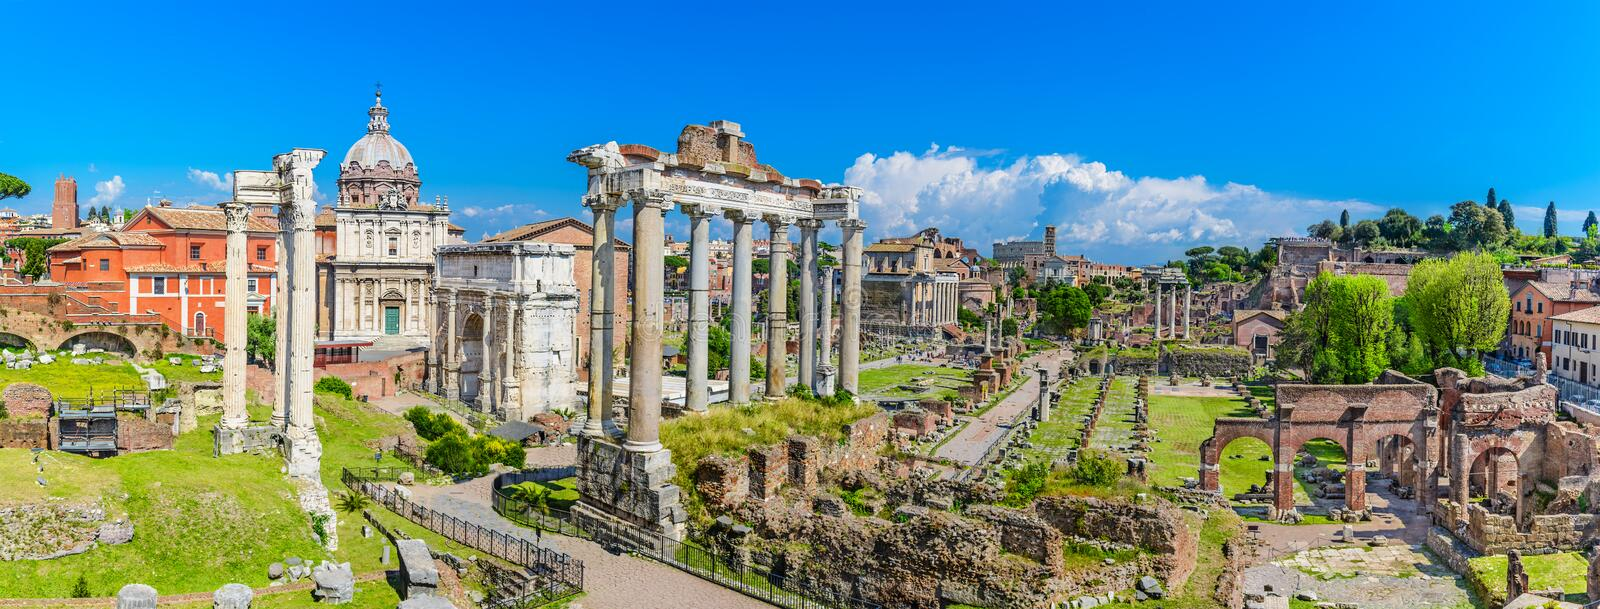 Ancient Forum with temples, pillars, the senate and ancient streets,Rome,Italy royalty free stock photos